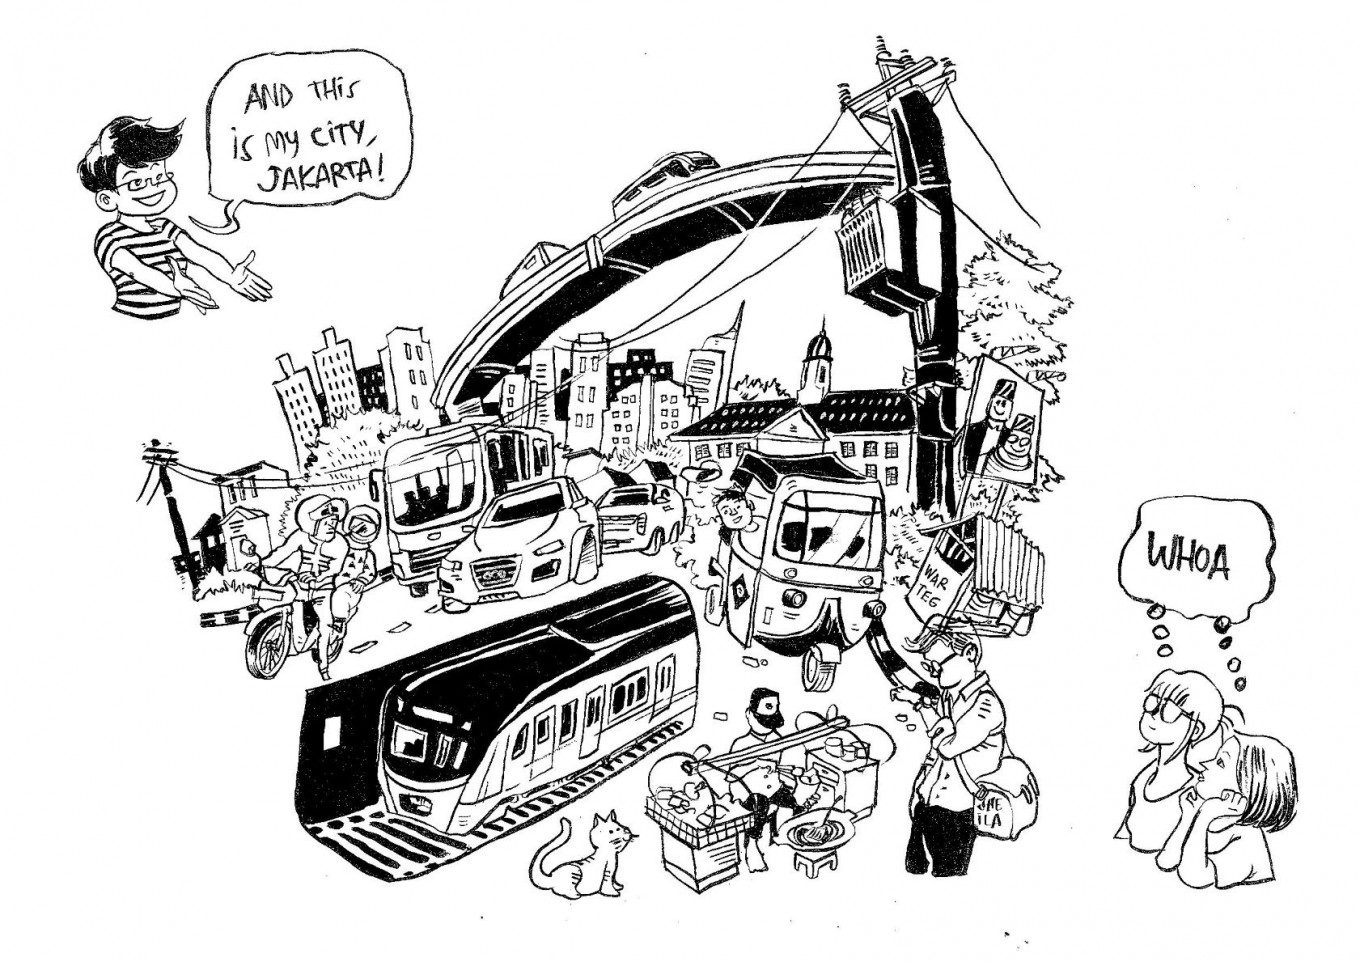 Book your story: Of comics, cityscapes and urban nature